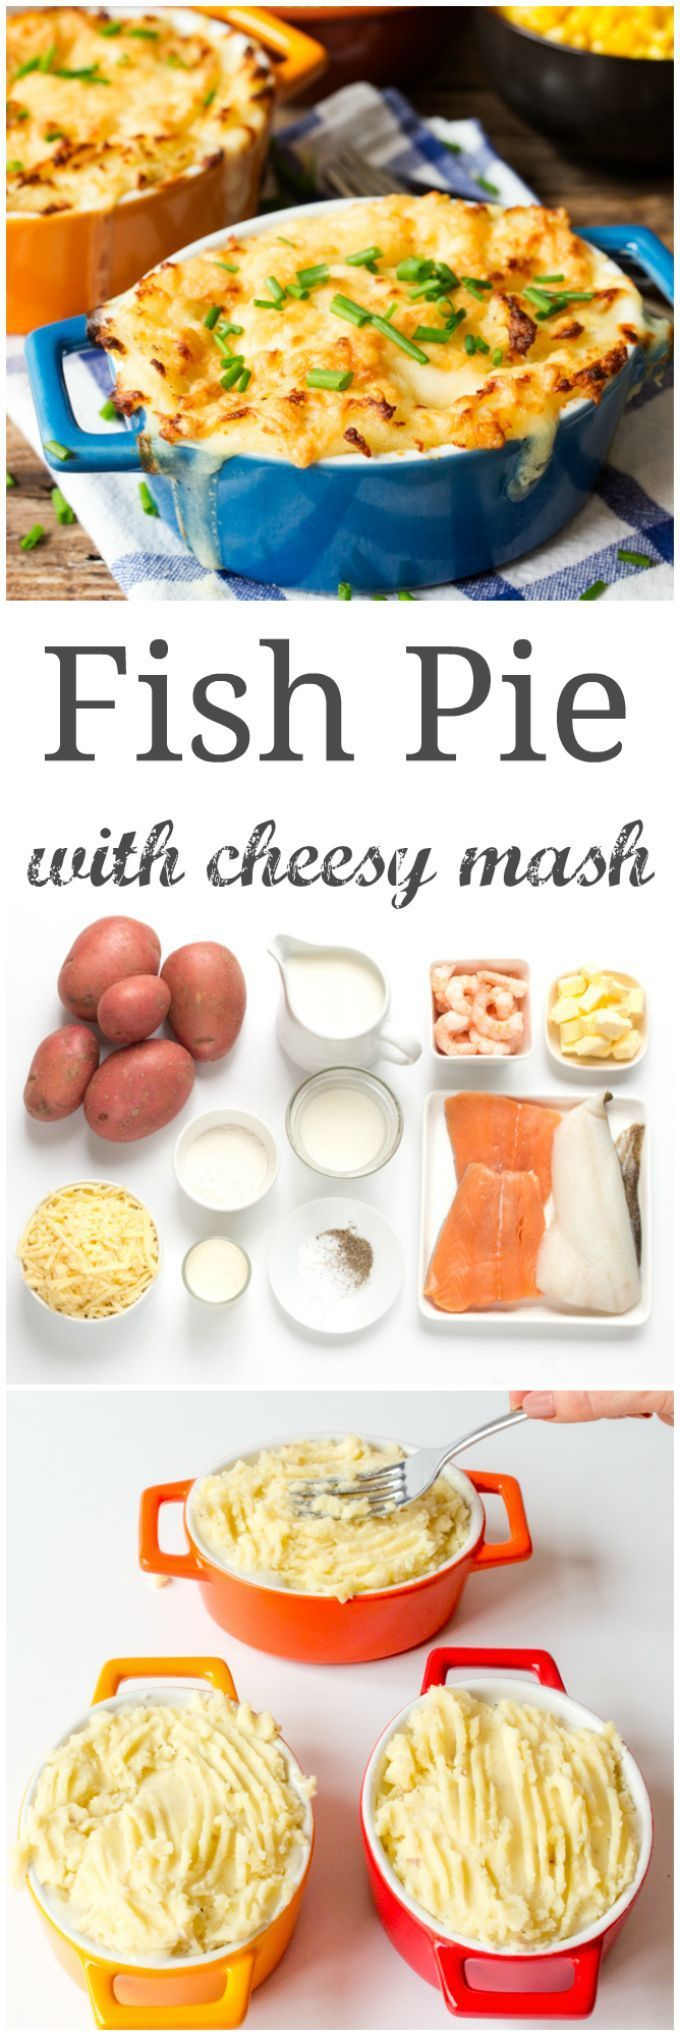 Nothing beats a creamy fish pie for some hearty comfort food.  GF version included with this recipe too.